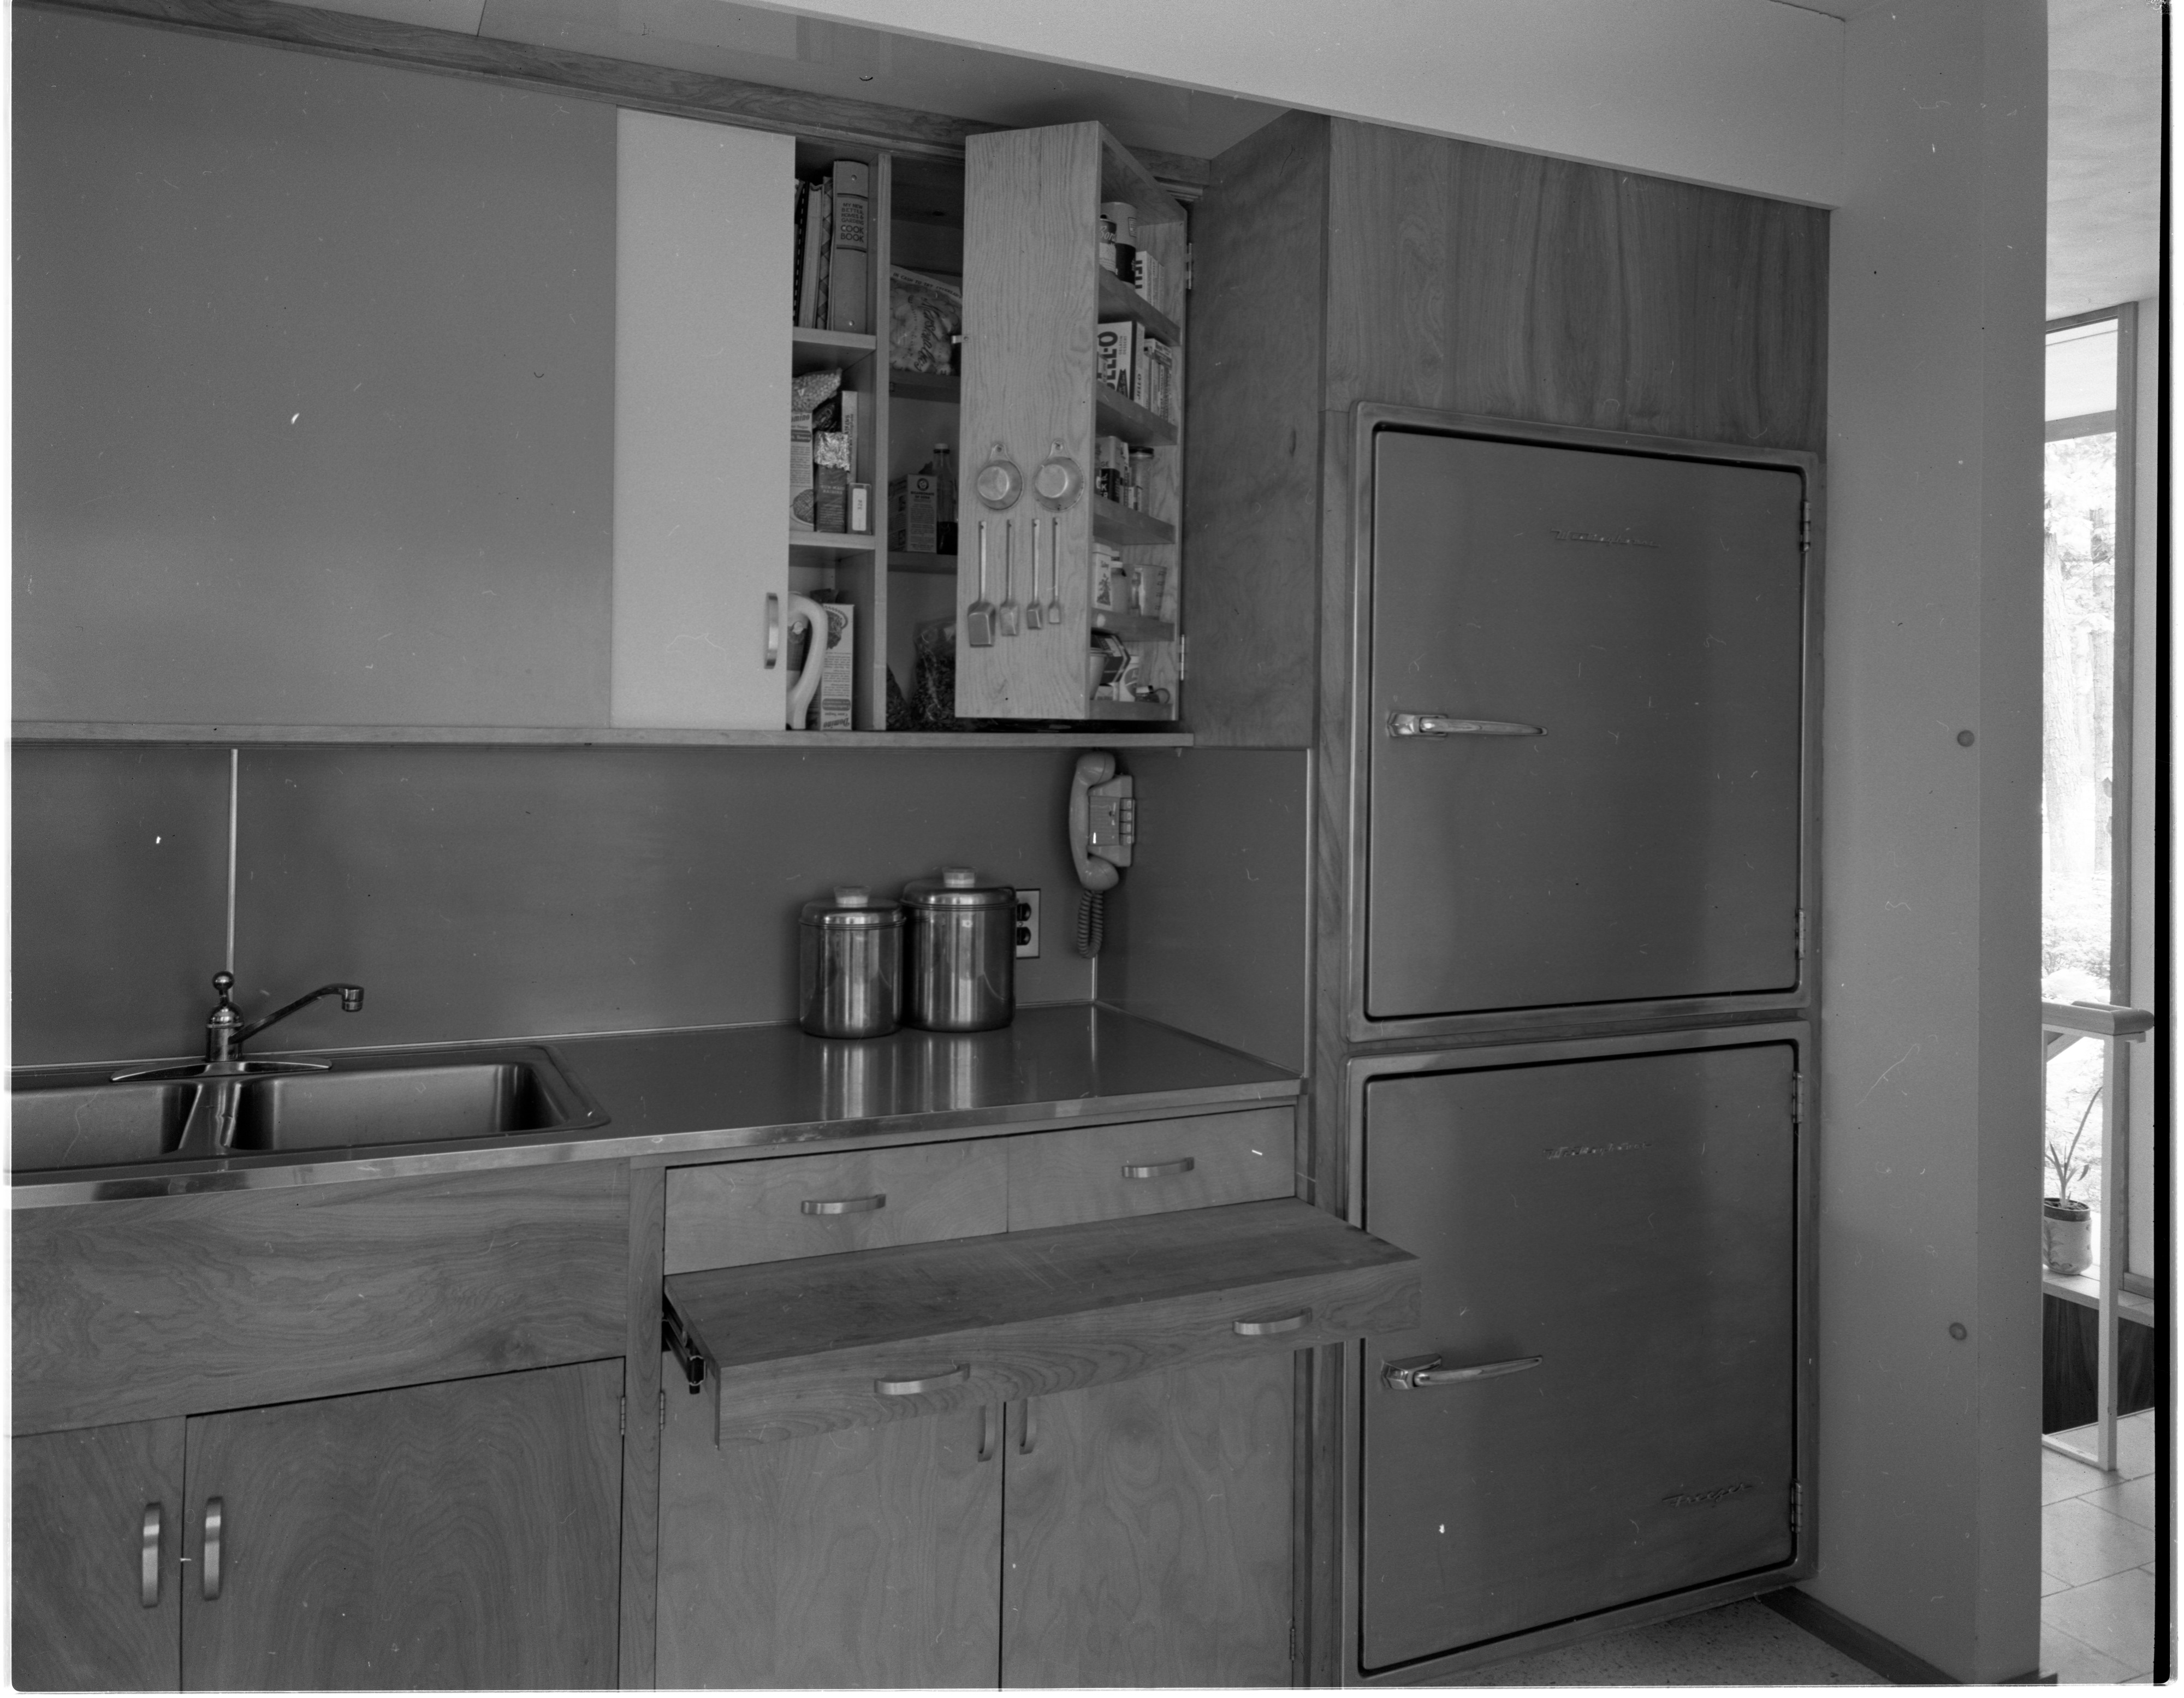 Swing-Out Cabinetry Adds Space to Kitchen of Moore Home, June 1958 image